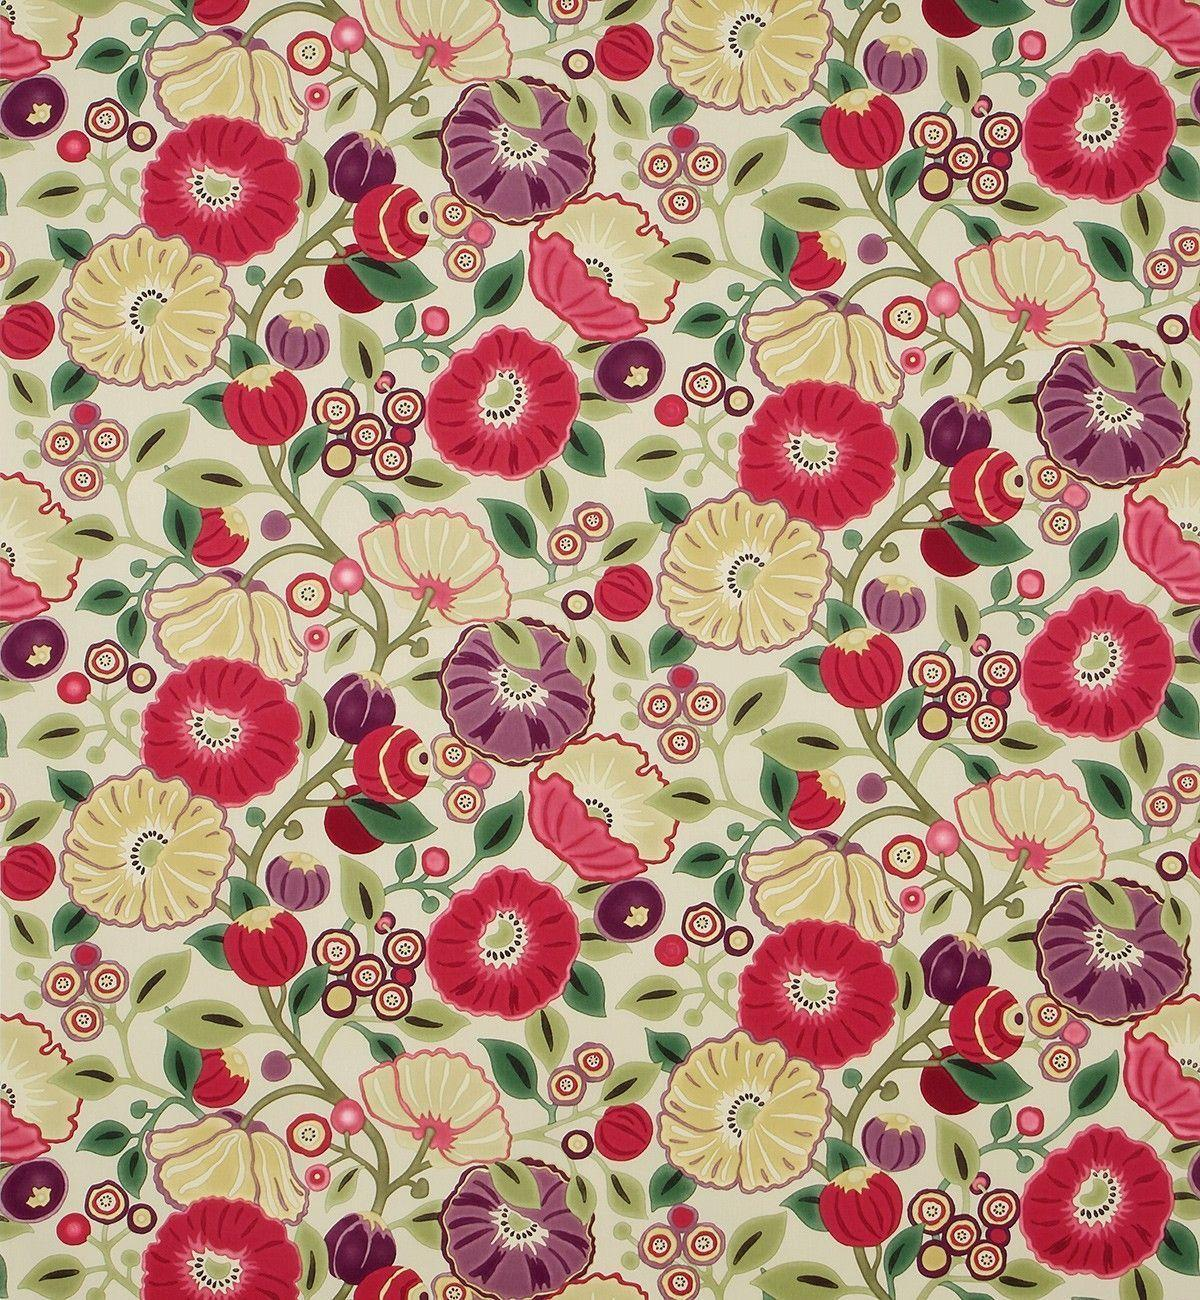 Computer Wallpaper Floral: Floral Computer Wallpapers